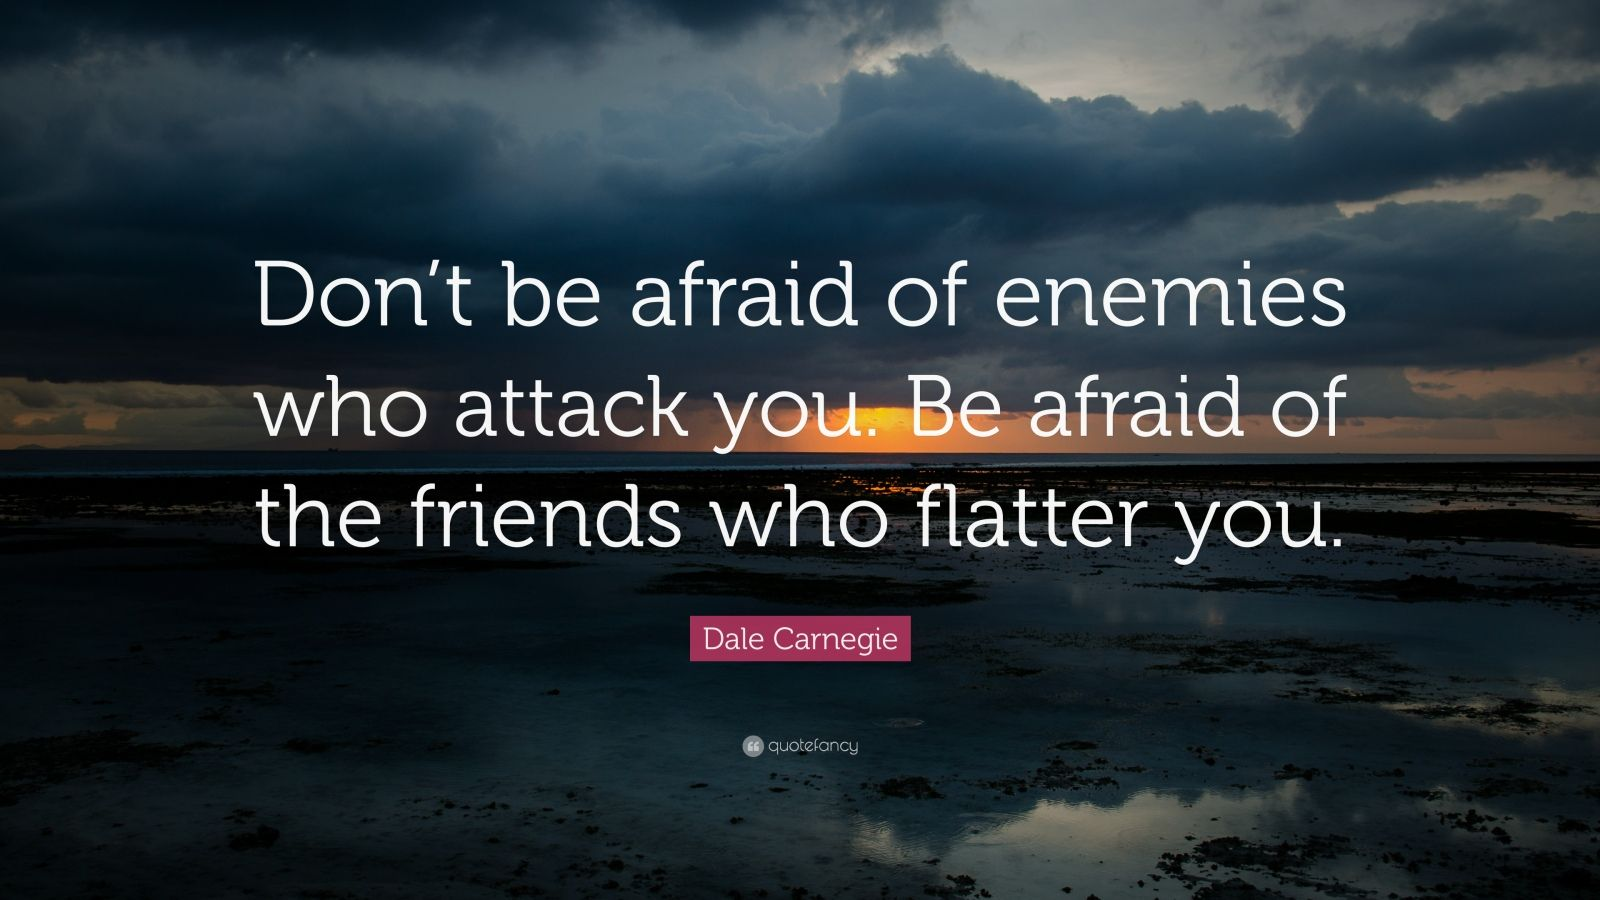 """Dale Carnegie Quote: """"Don't be afraid of enemies who attack you. Be afraid of the friends who flatter you."""""""